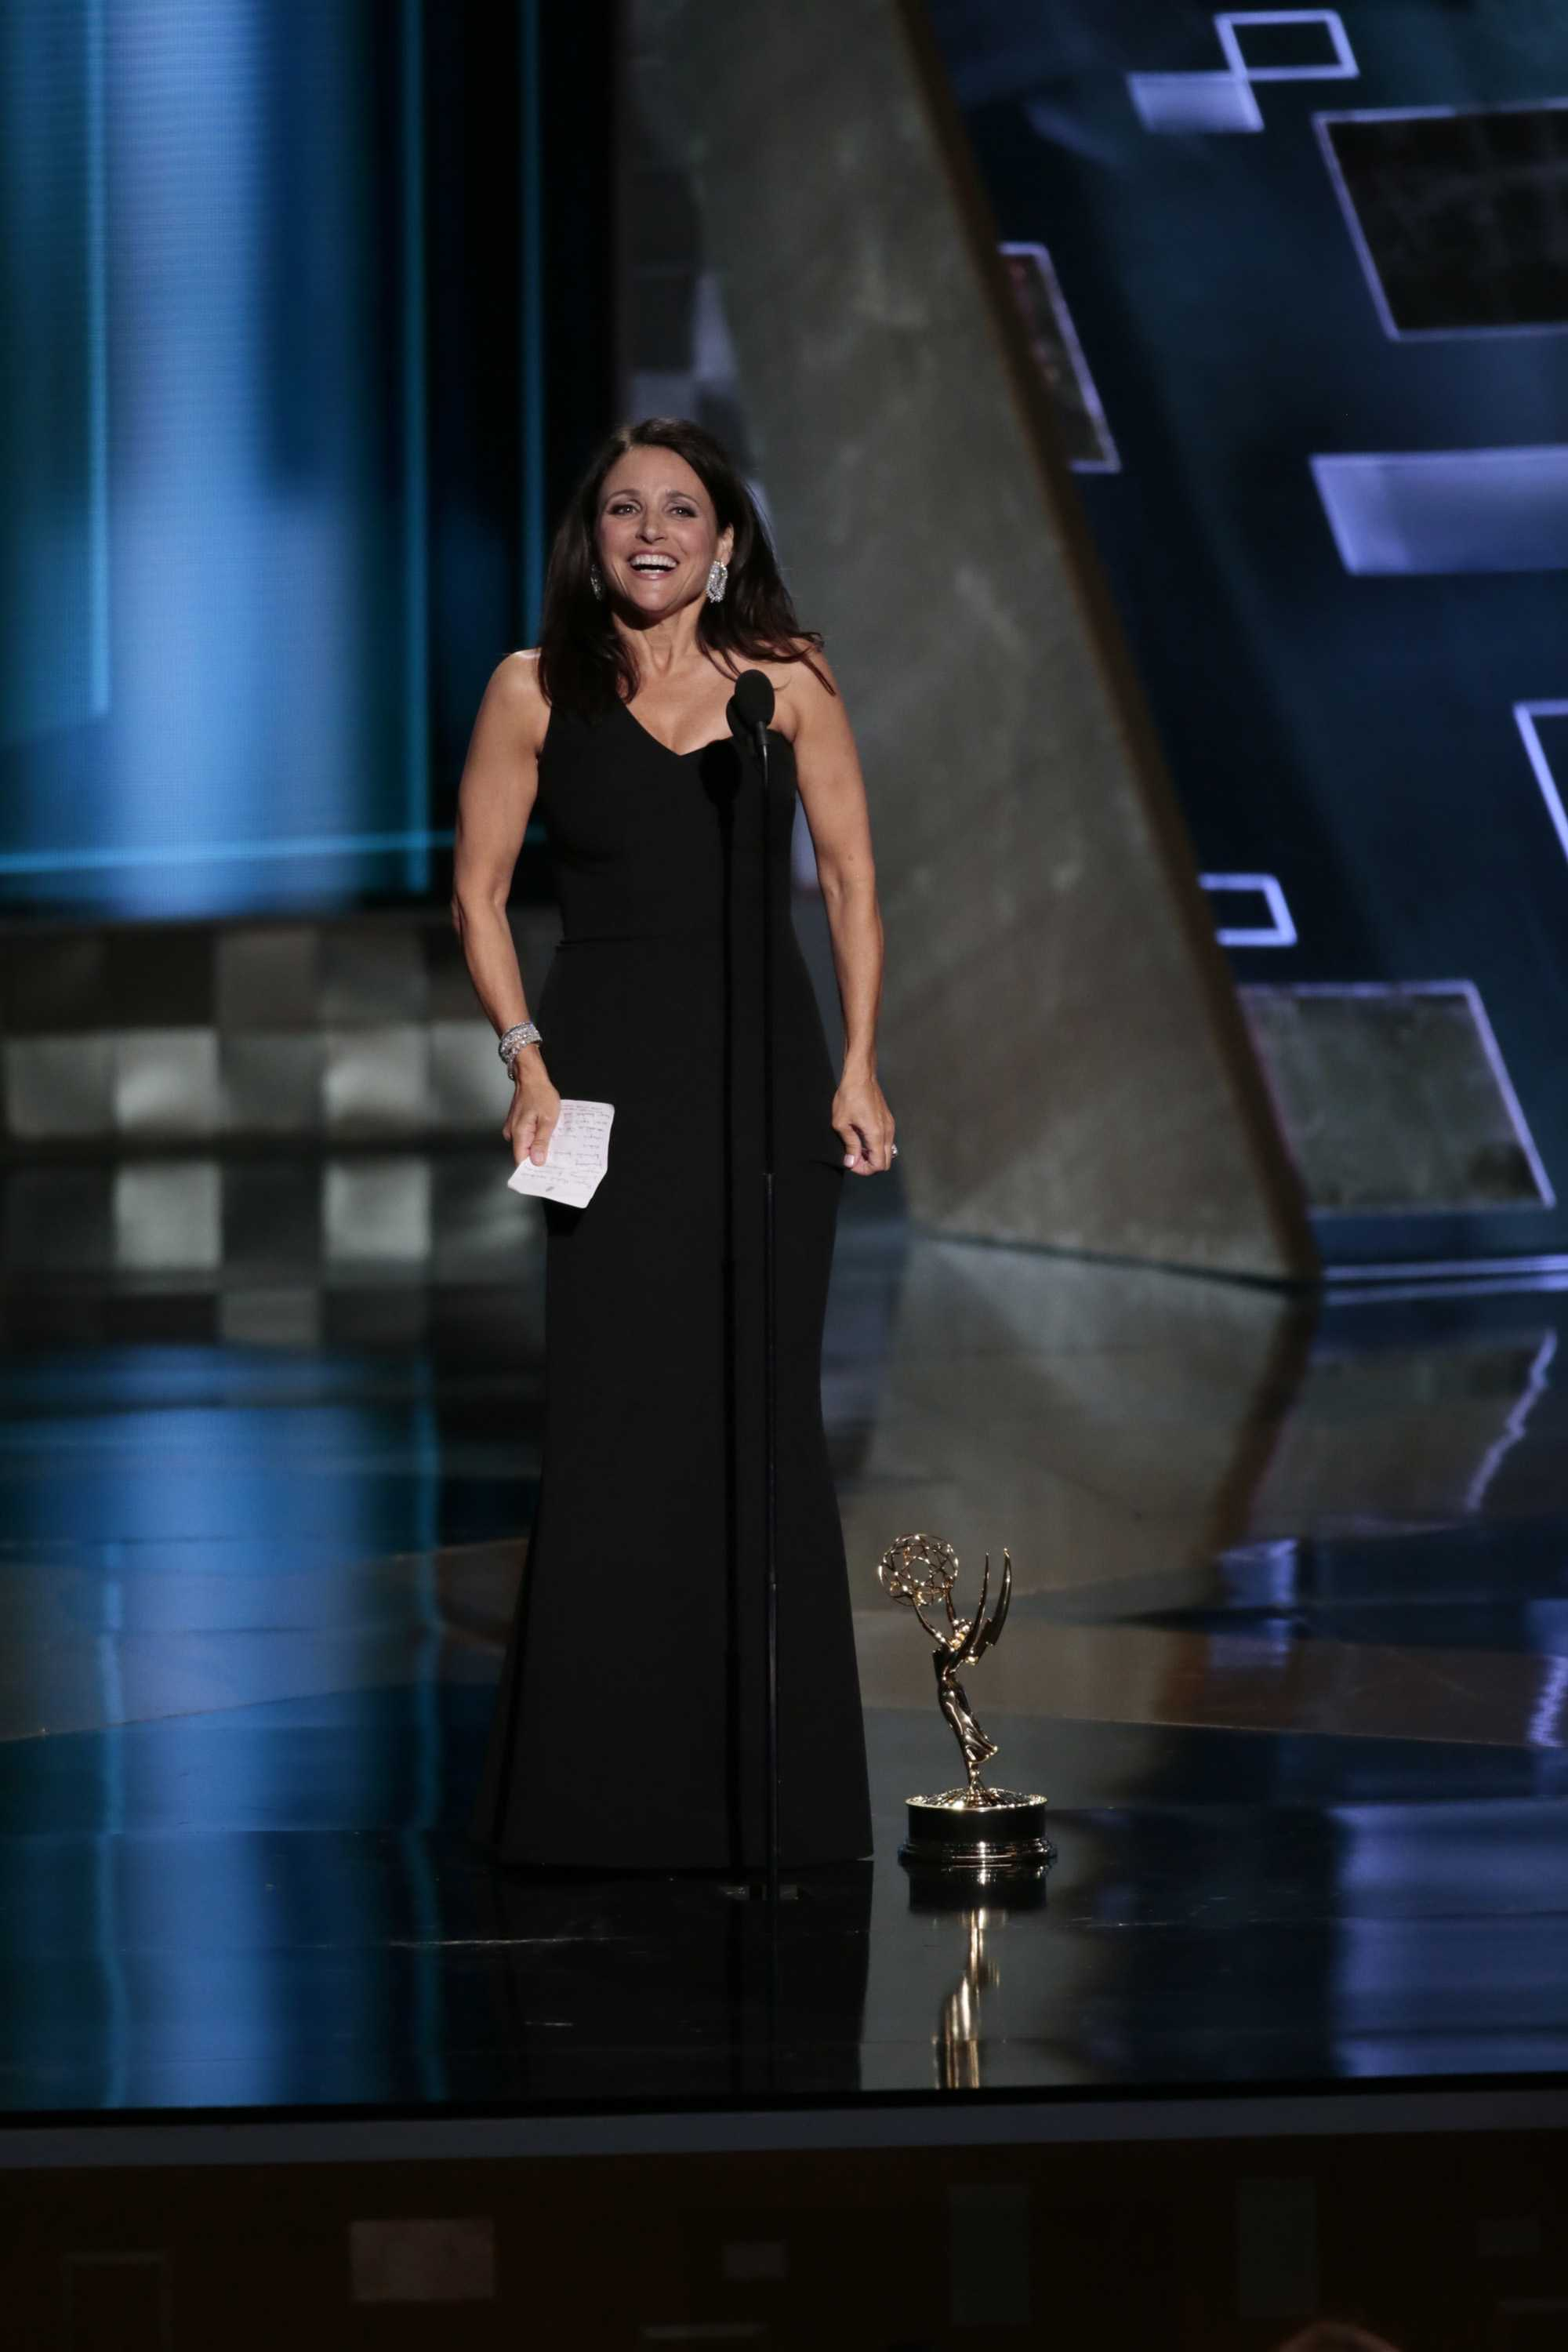 Julia Louis-Dreyfus steps on to the stage at the 67th Primetime Emmy Awards after winning Outstanding Lead Actress in a Comedy Series. Louis-Dreyfus (Communication '83) was among several other alums who received awards and/or nominations during the show Sunday night.